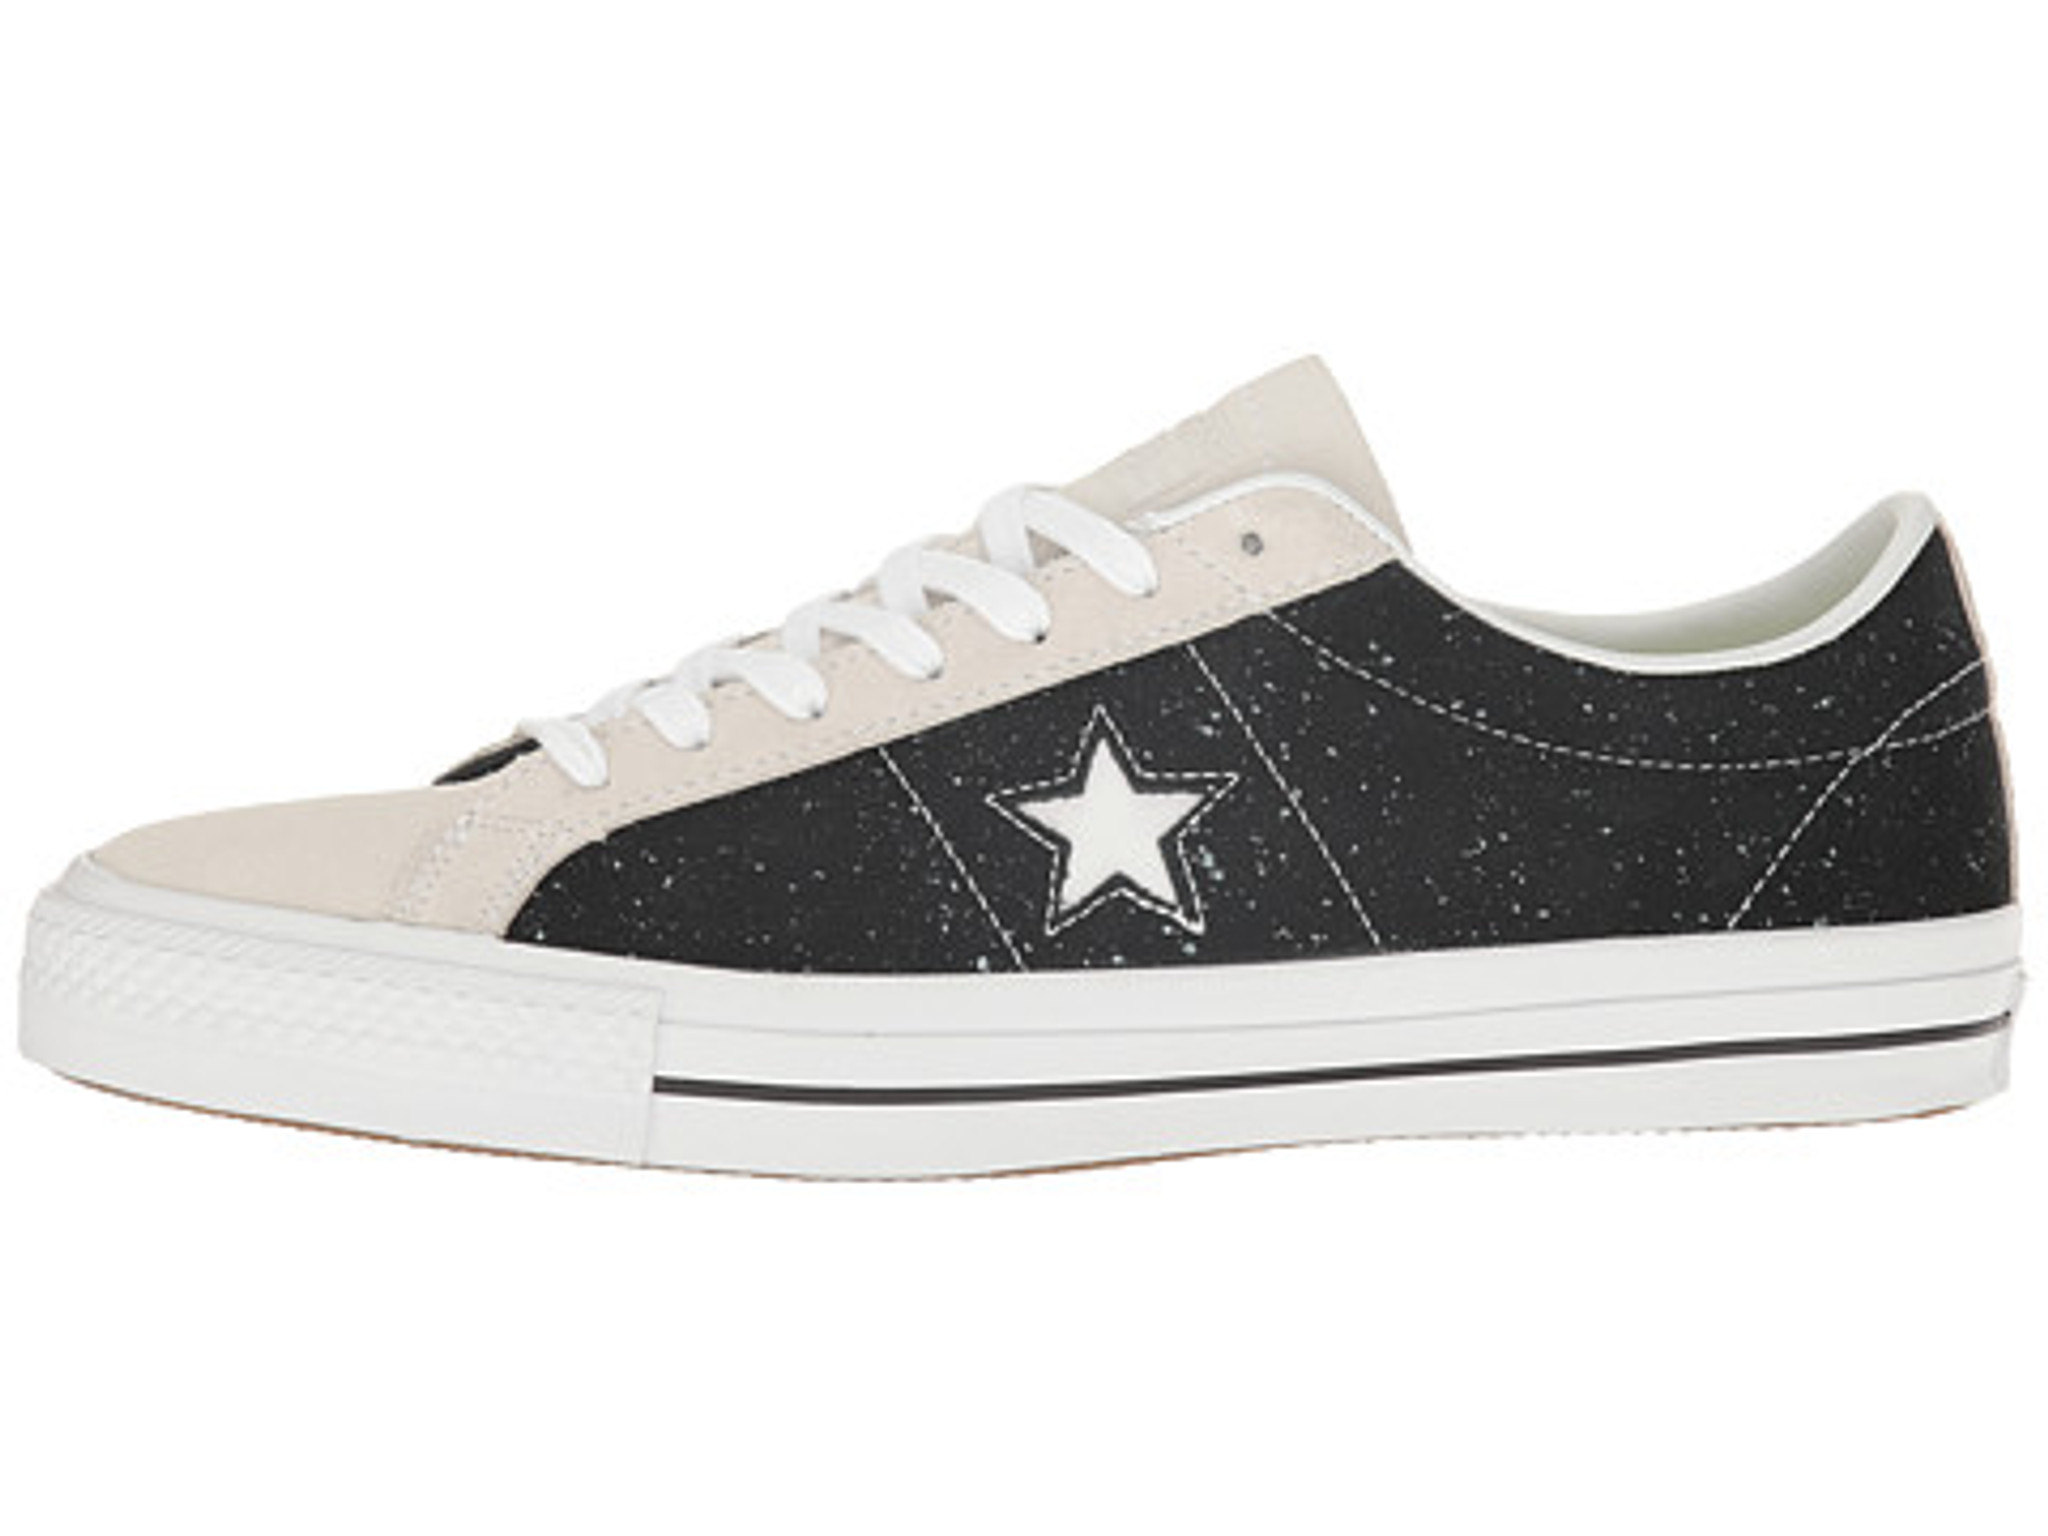 faafafc1efd175 Converse CONS One Star Pro Speckled Suede Low Top FREE SHIPPING ...